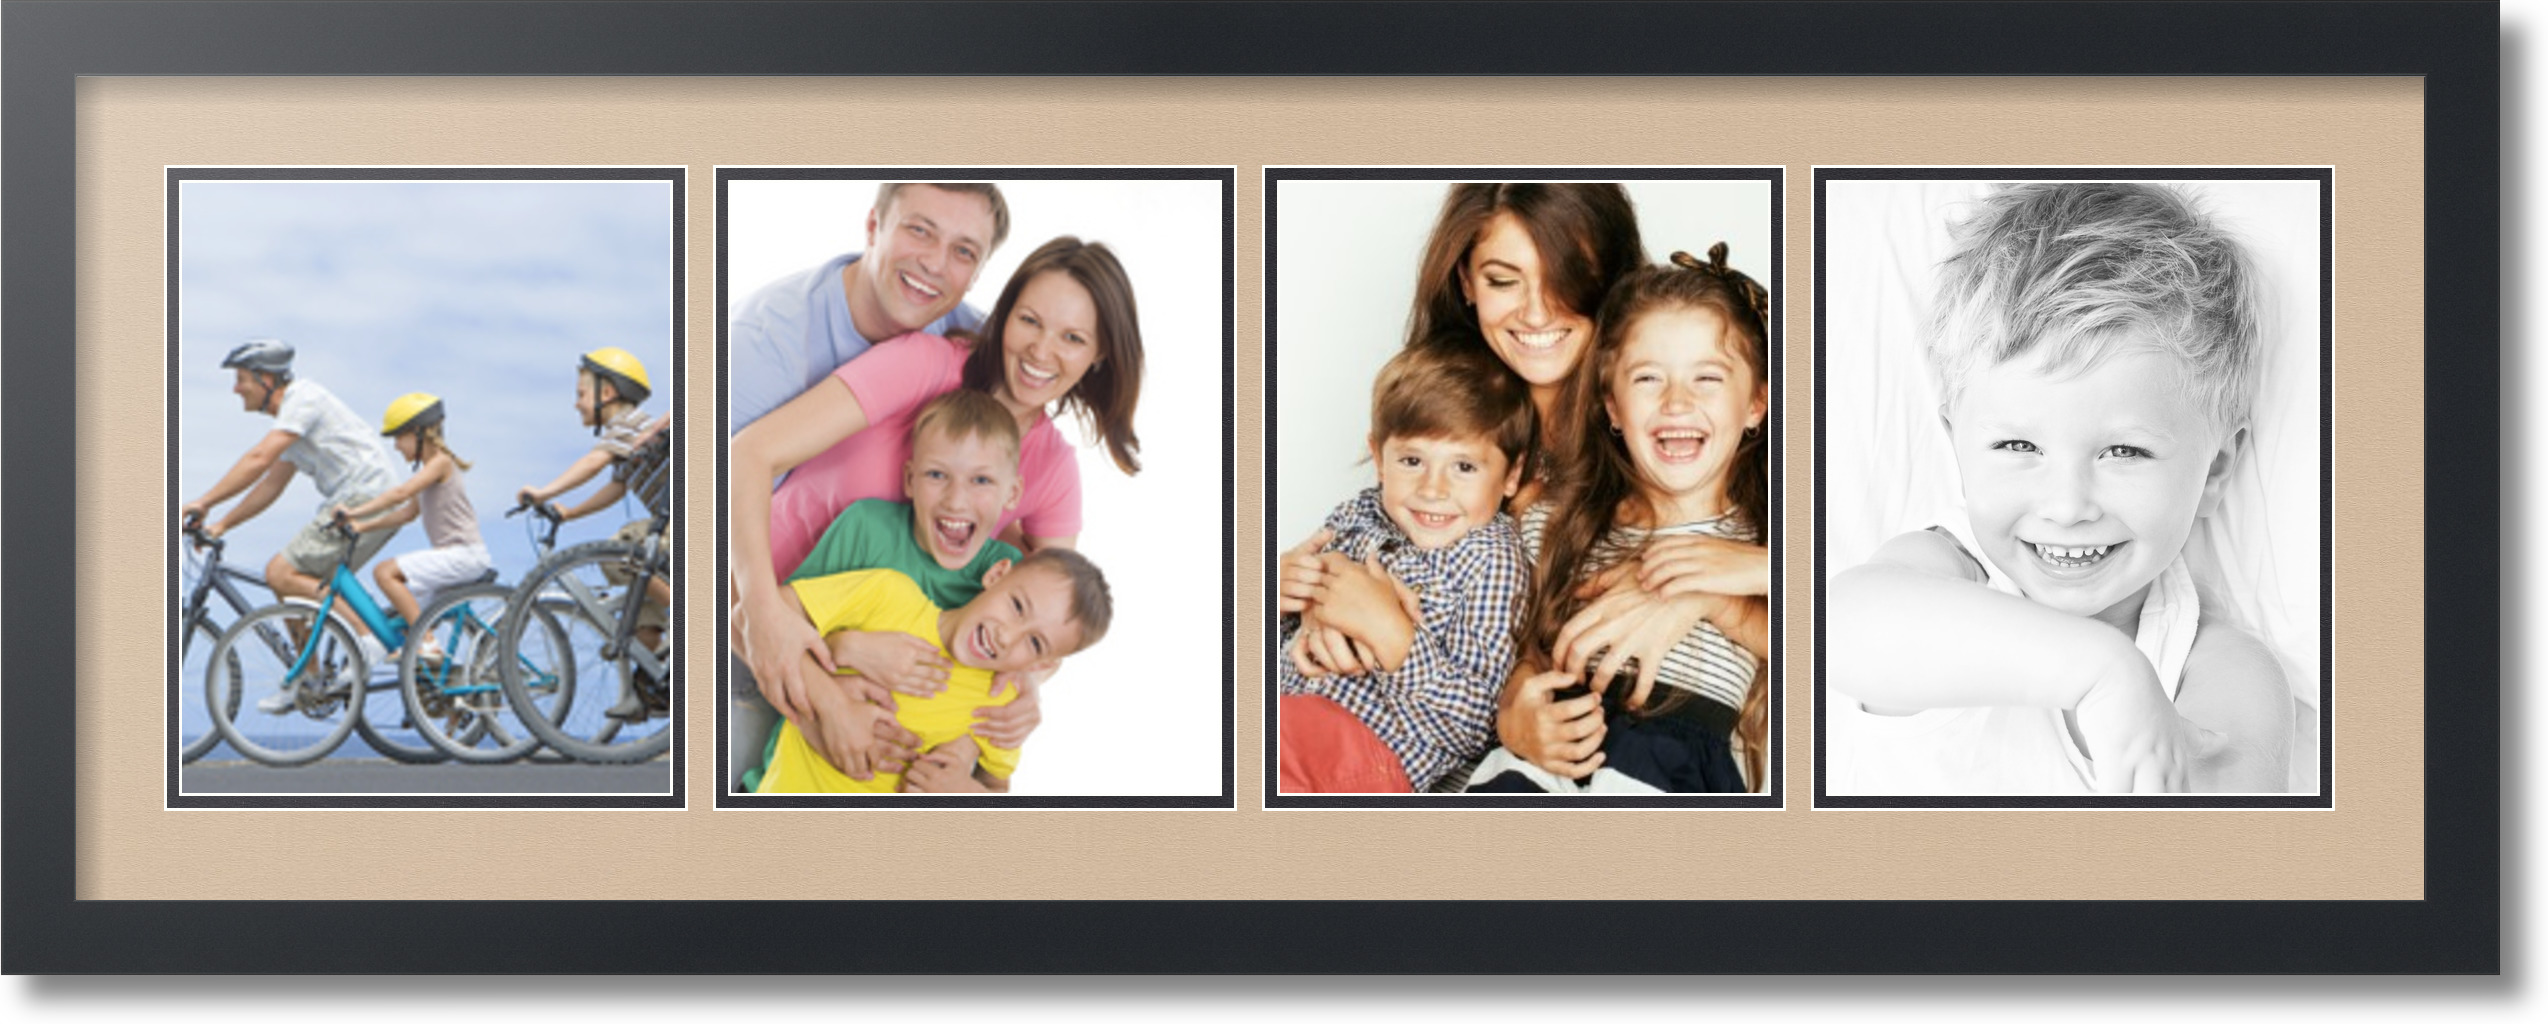 arttoframes collage mat picture photo frame 4 8x10 openings satin black 19 ebay. Black Bedroom Furniture Sets. Home Design Ideas